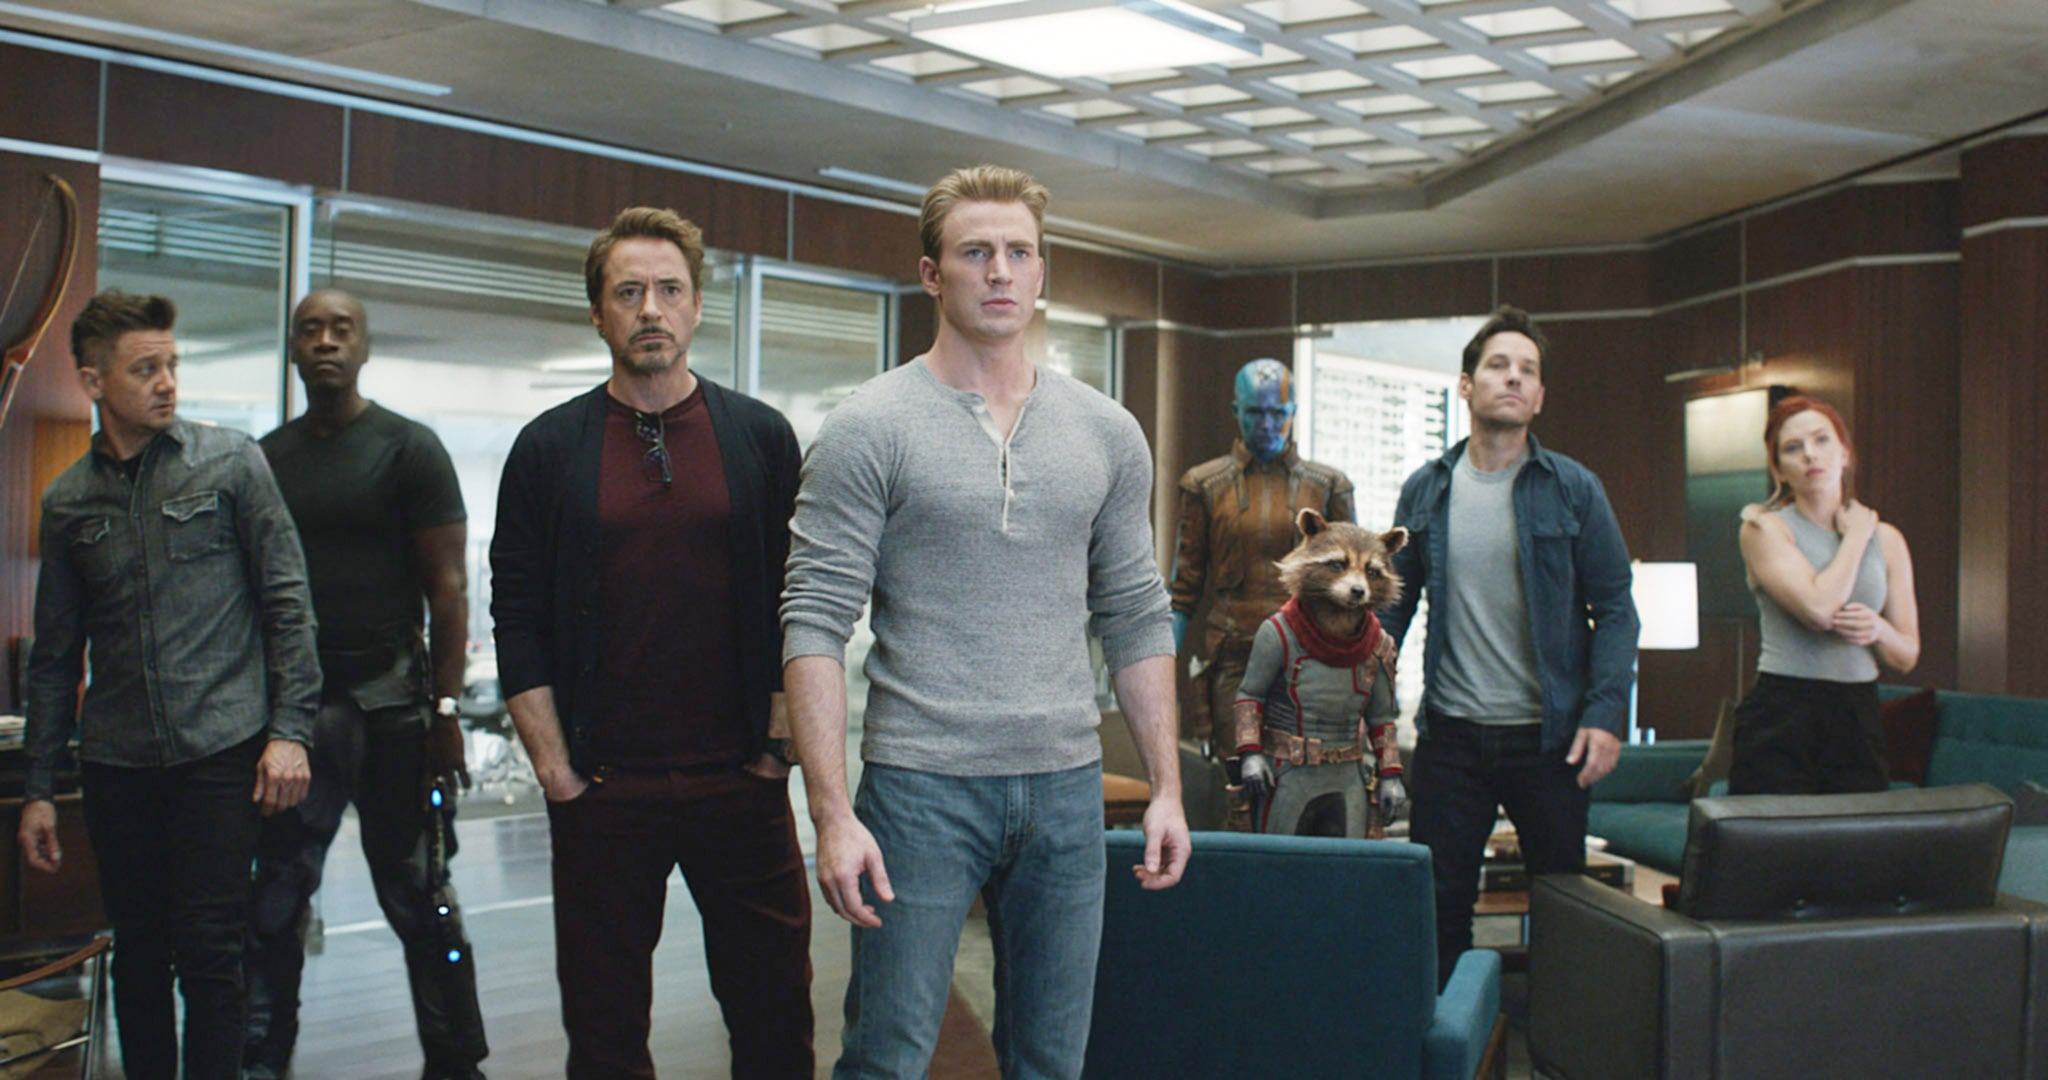 AVENGERS: ENDGAME, (aka AVENGERS 4), from left: Jeremy Renner, Don Cheadle, Robert Downey Jr., Chris Evans, Karen Gillan, Bradley Cooper (voice of Rocket), Paul Rudd, Scarlett Johansson, 2019.  Walt Disney Studios Motion Pictures /  Marvel Studios / courtesy Everett Collection